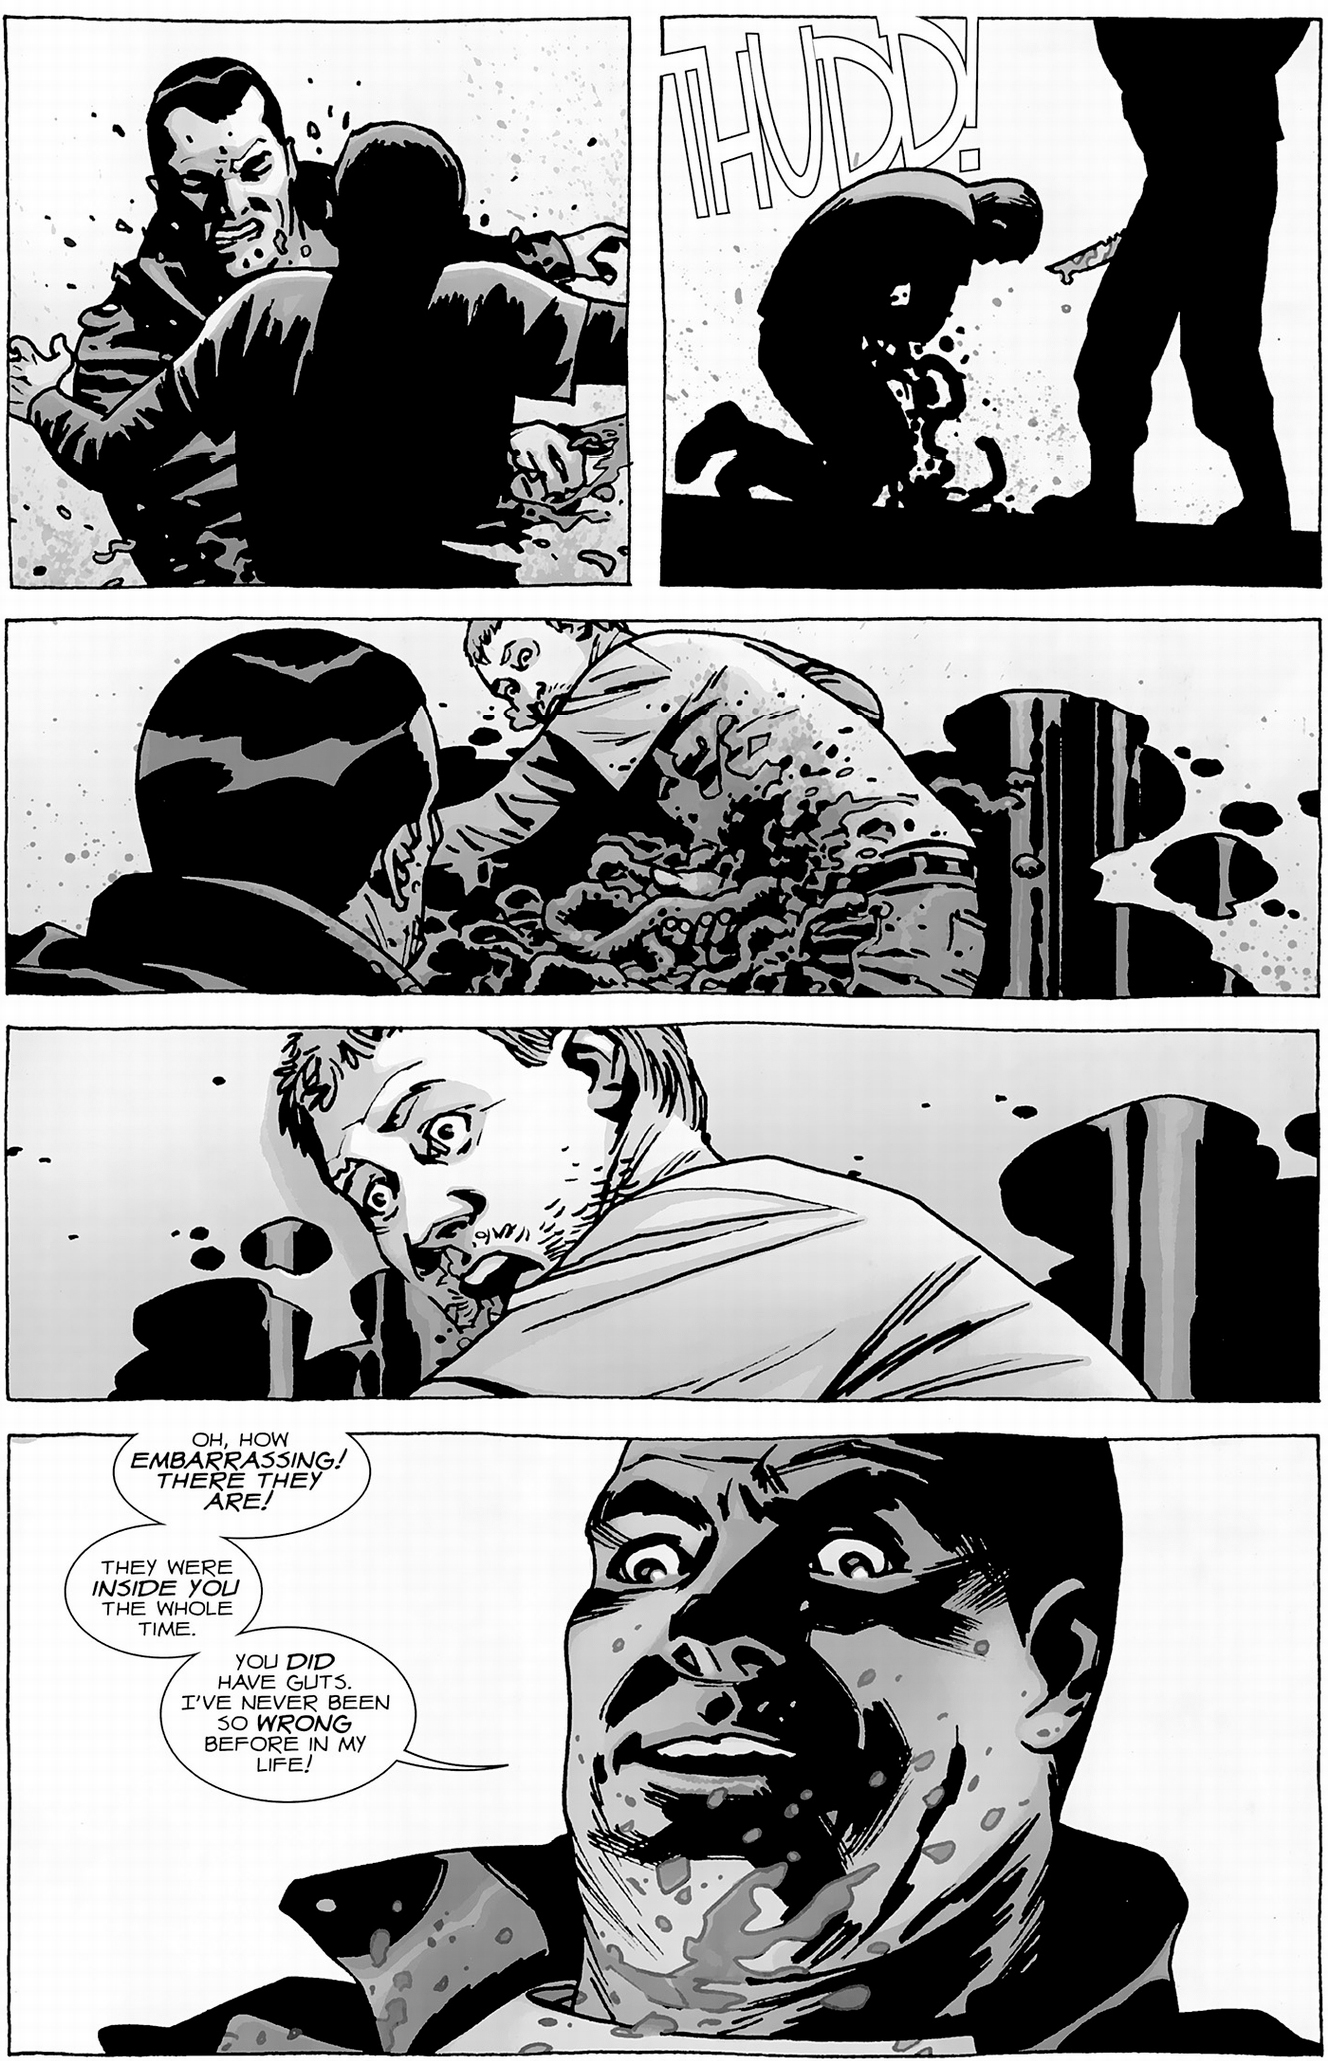 negan-kills-spencer-monroe-the-walking-dead